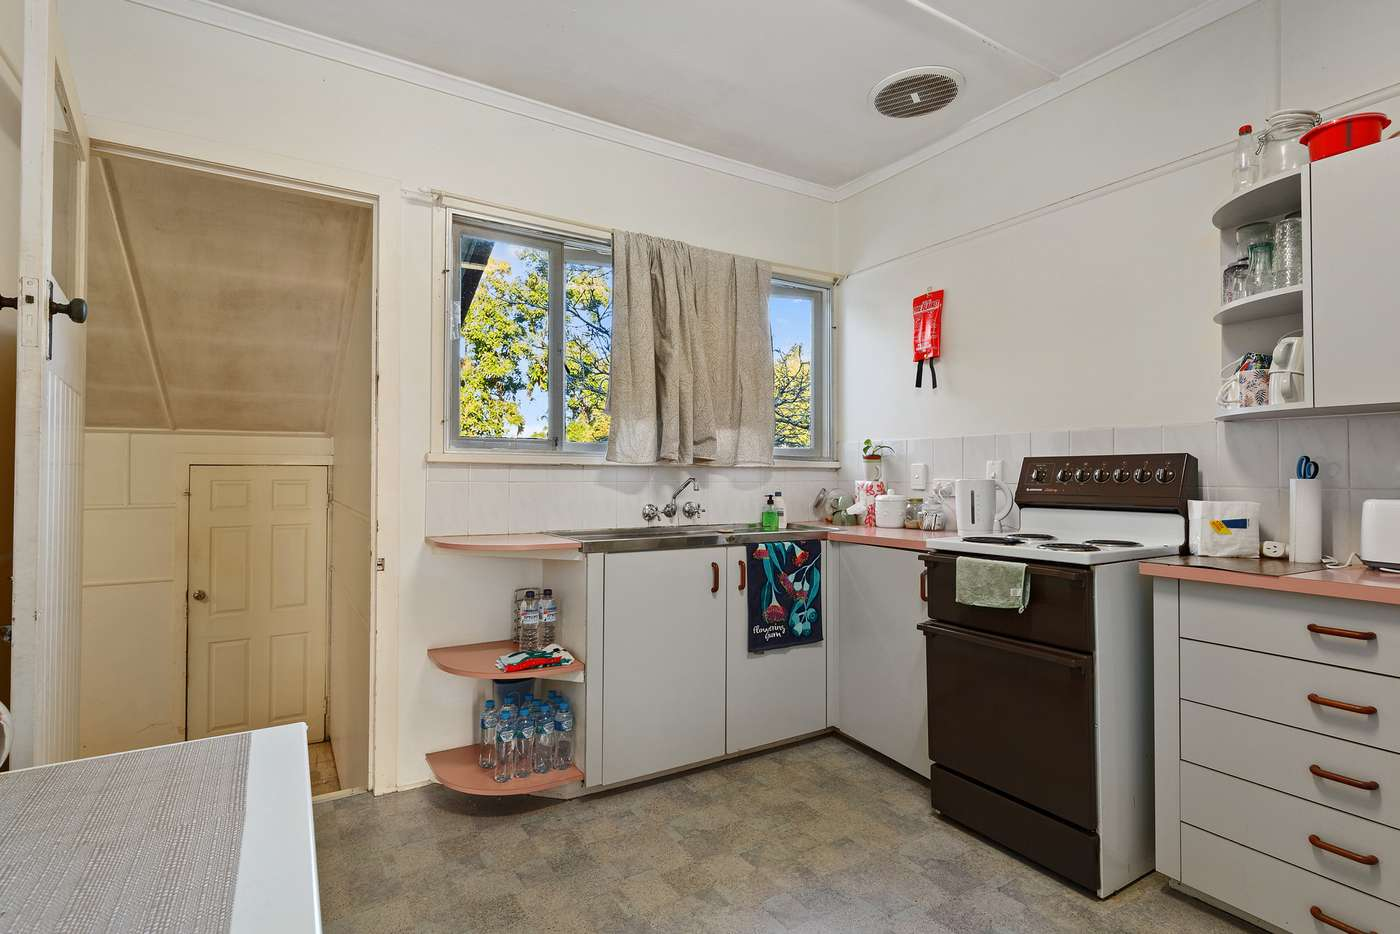 Sixth view of Homely house listing, 10 Brockhouse St, Upper Mount Gravatt QLD 4122